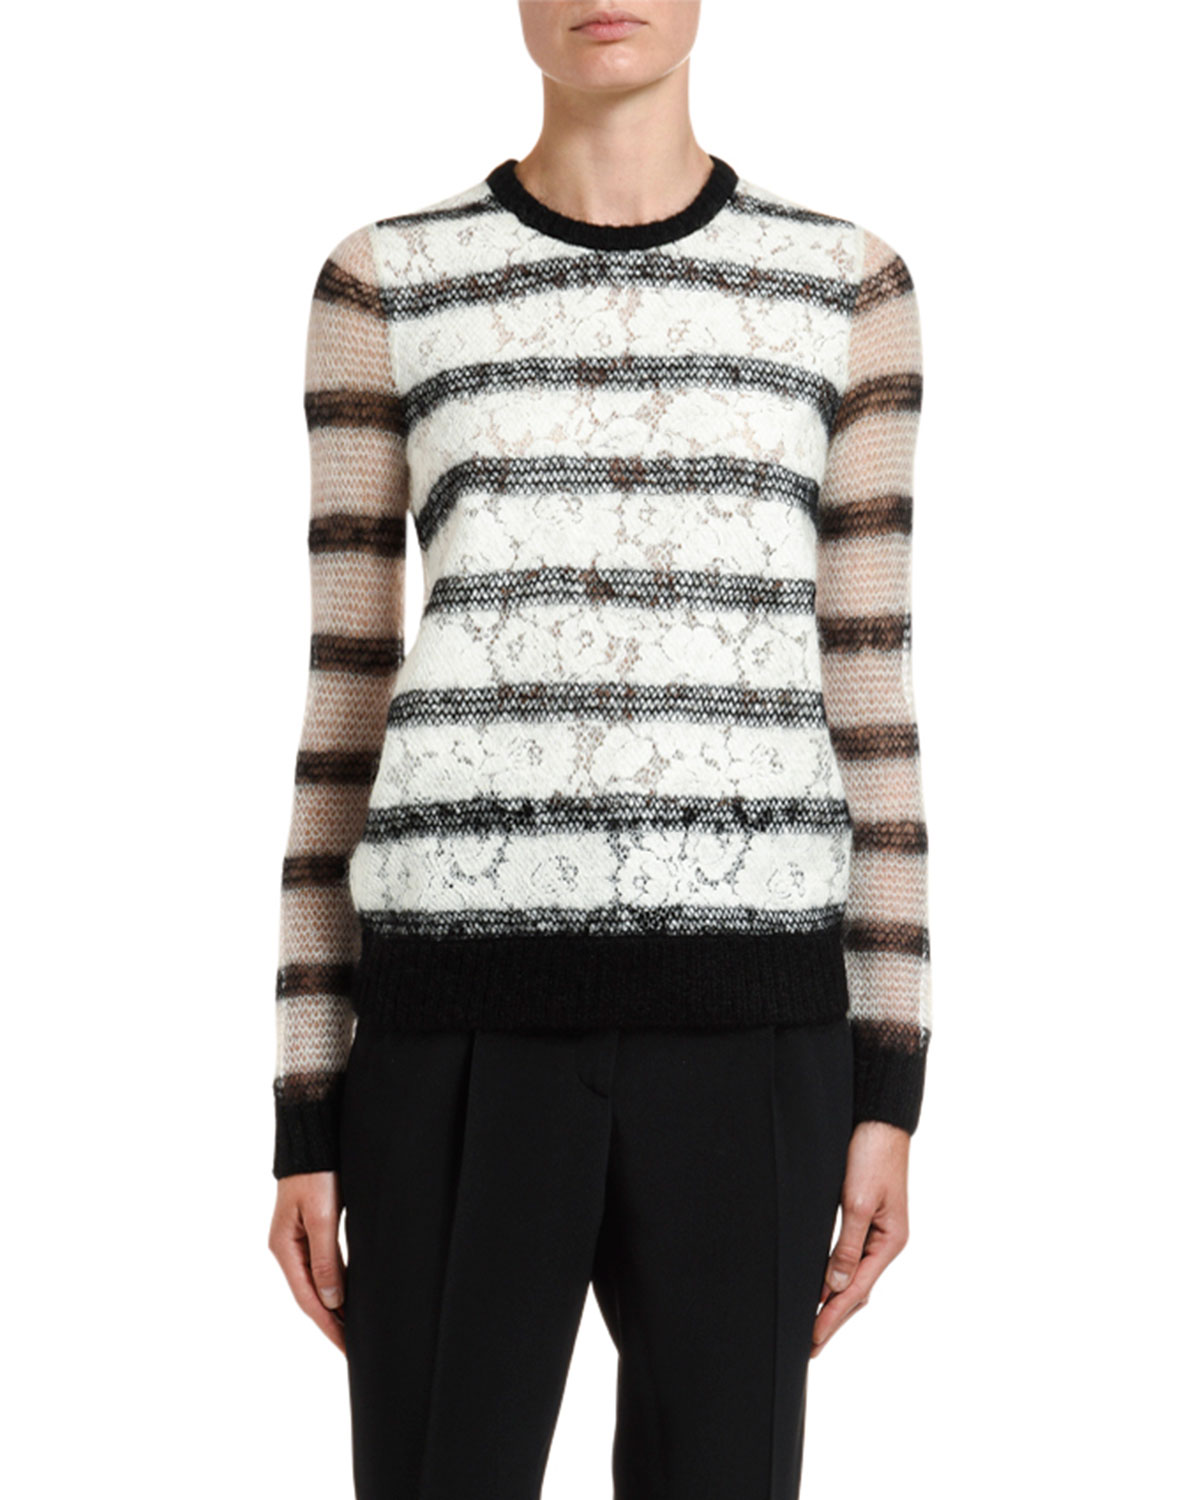 N°21 Knits CREWNECK LACE KNIT MOHAIR SWEATER